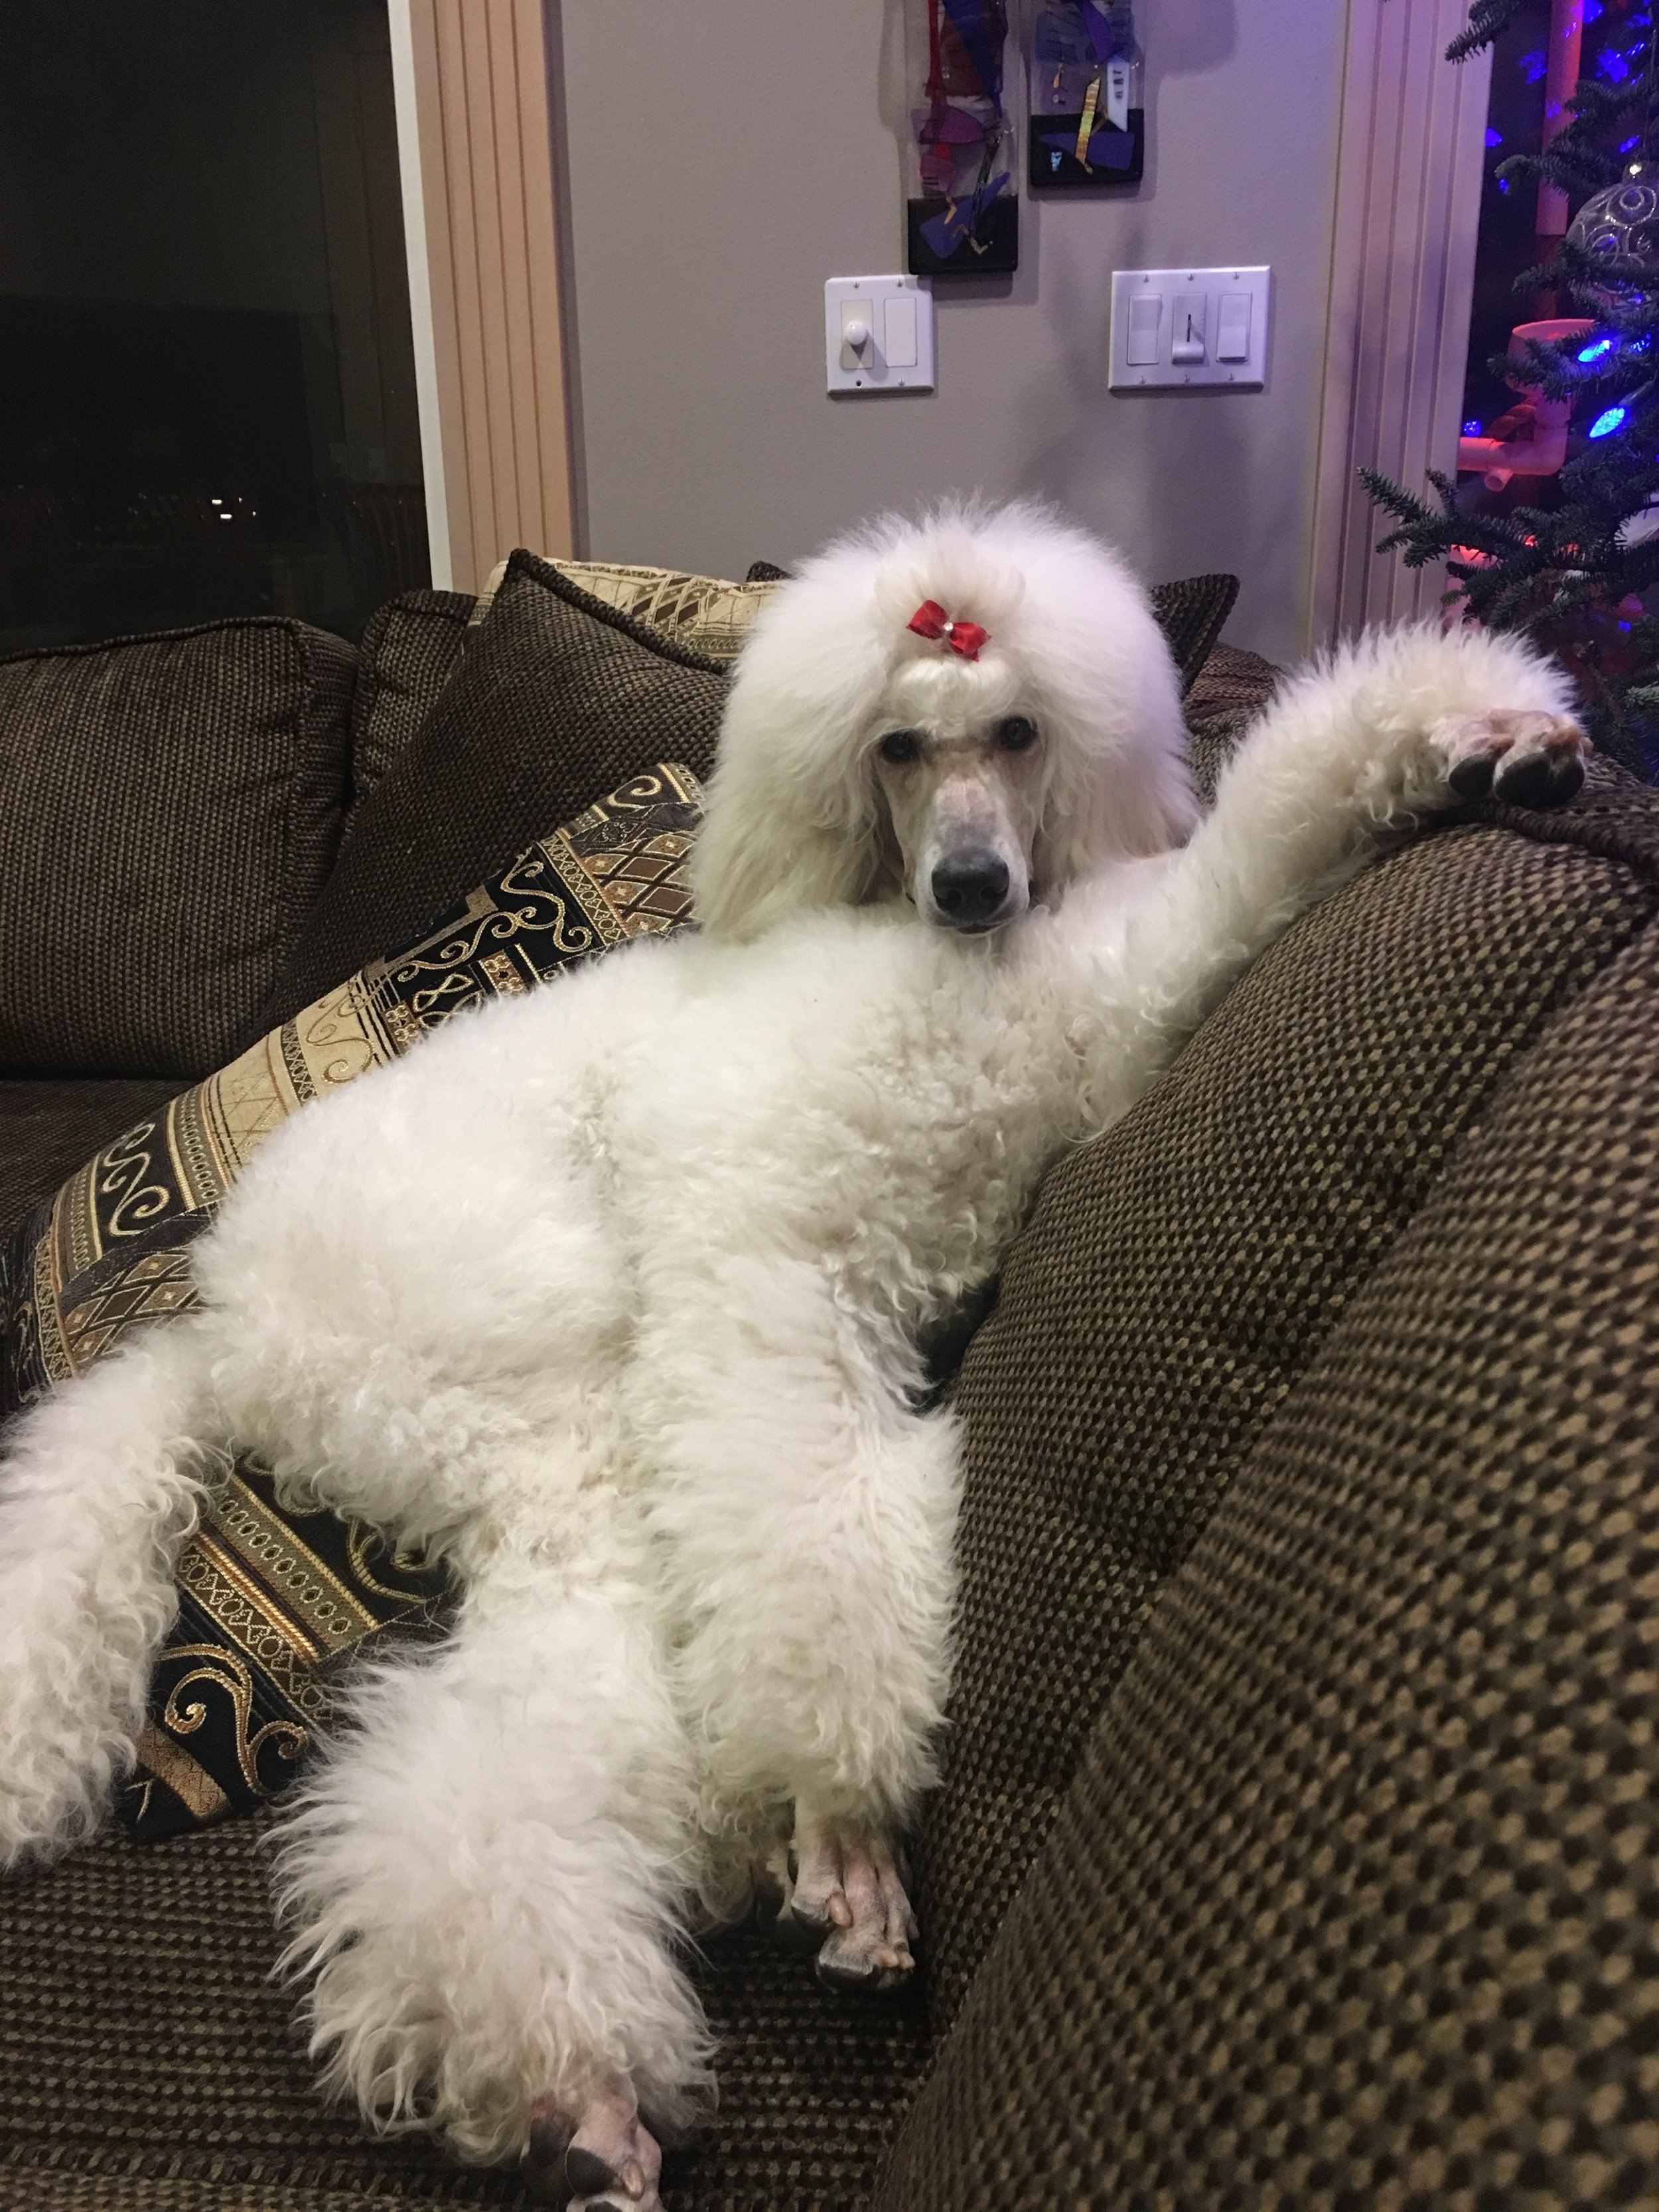 Pali, a white standard poodle puppy, makes herself at home on the couch.